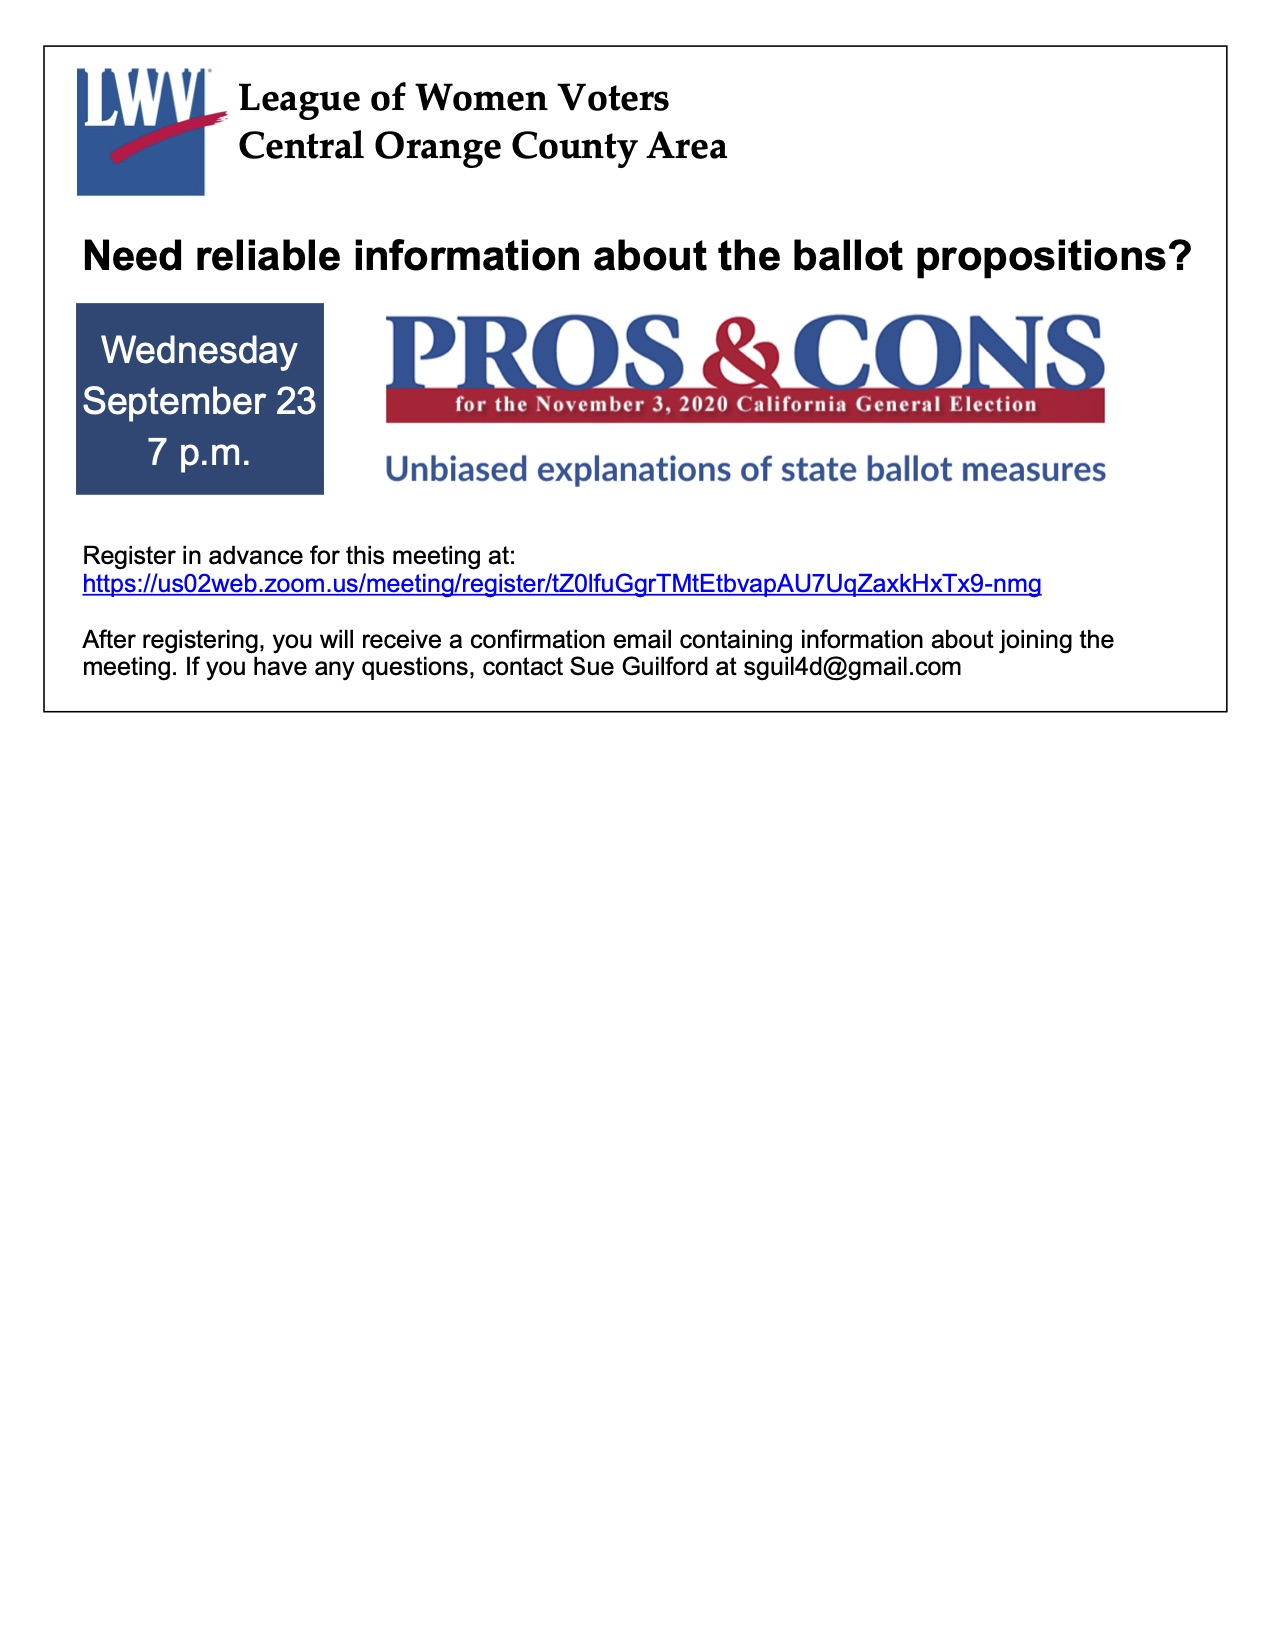 Pros & Cons of CA State Ballot Measures by Zoom on September 23, 2020